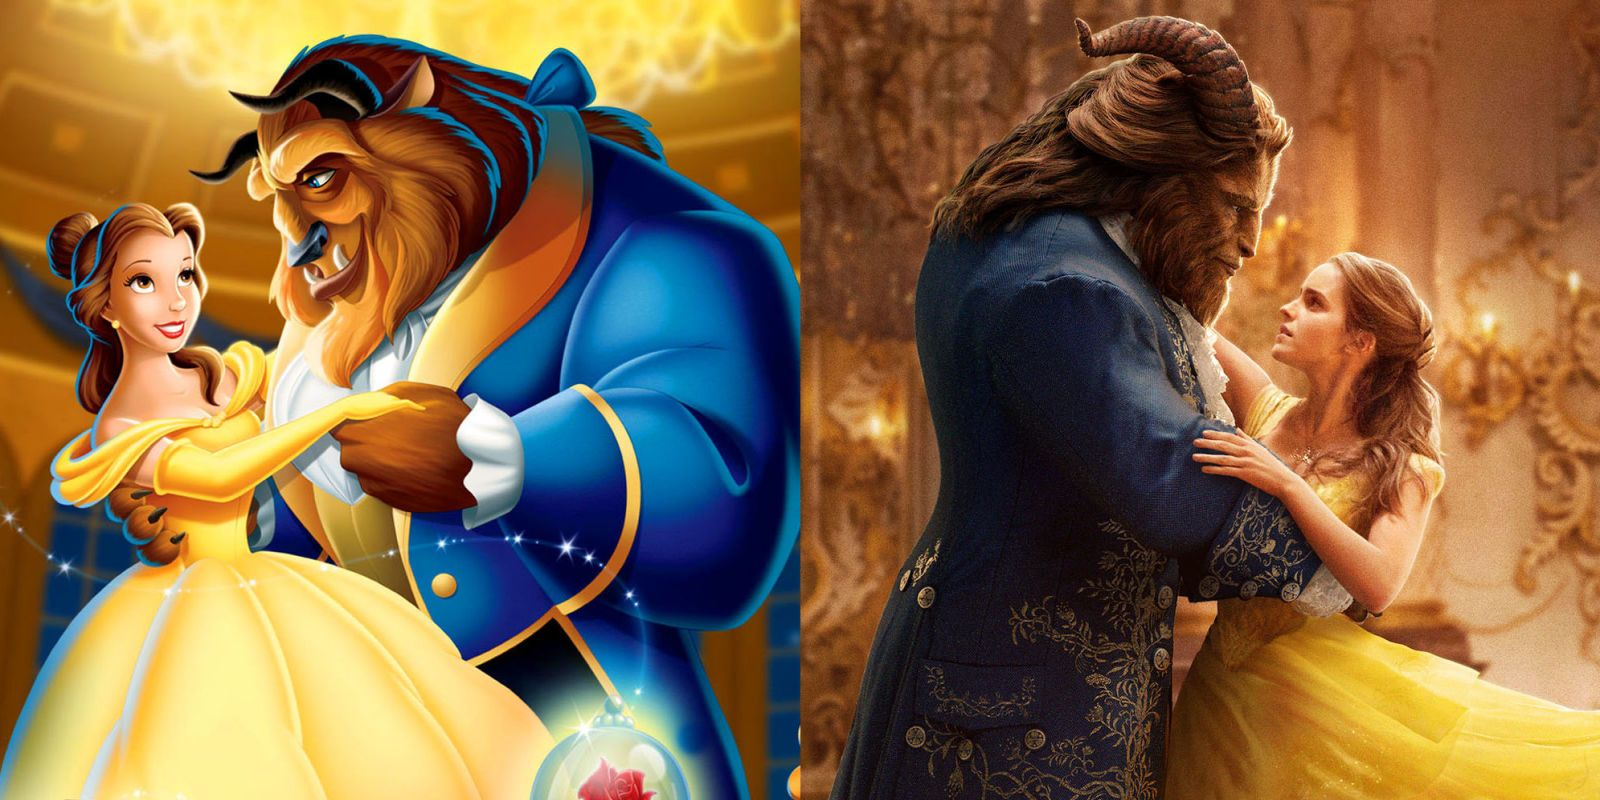 Beauty and the beast sex story